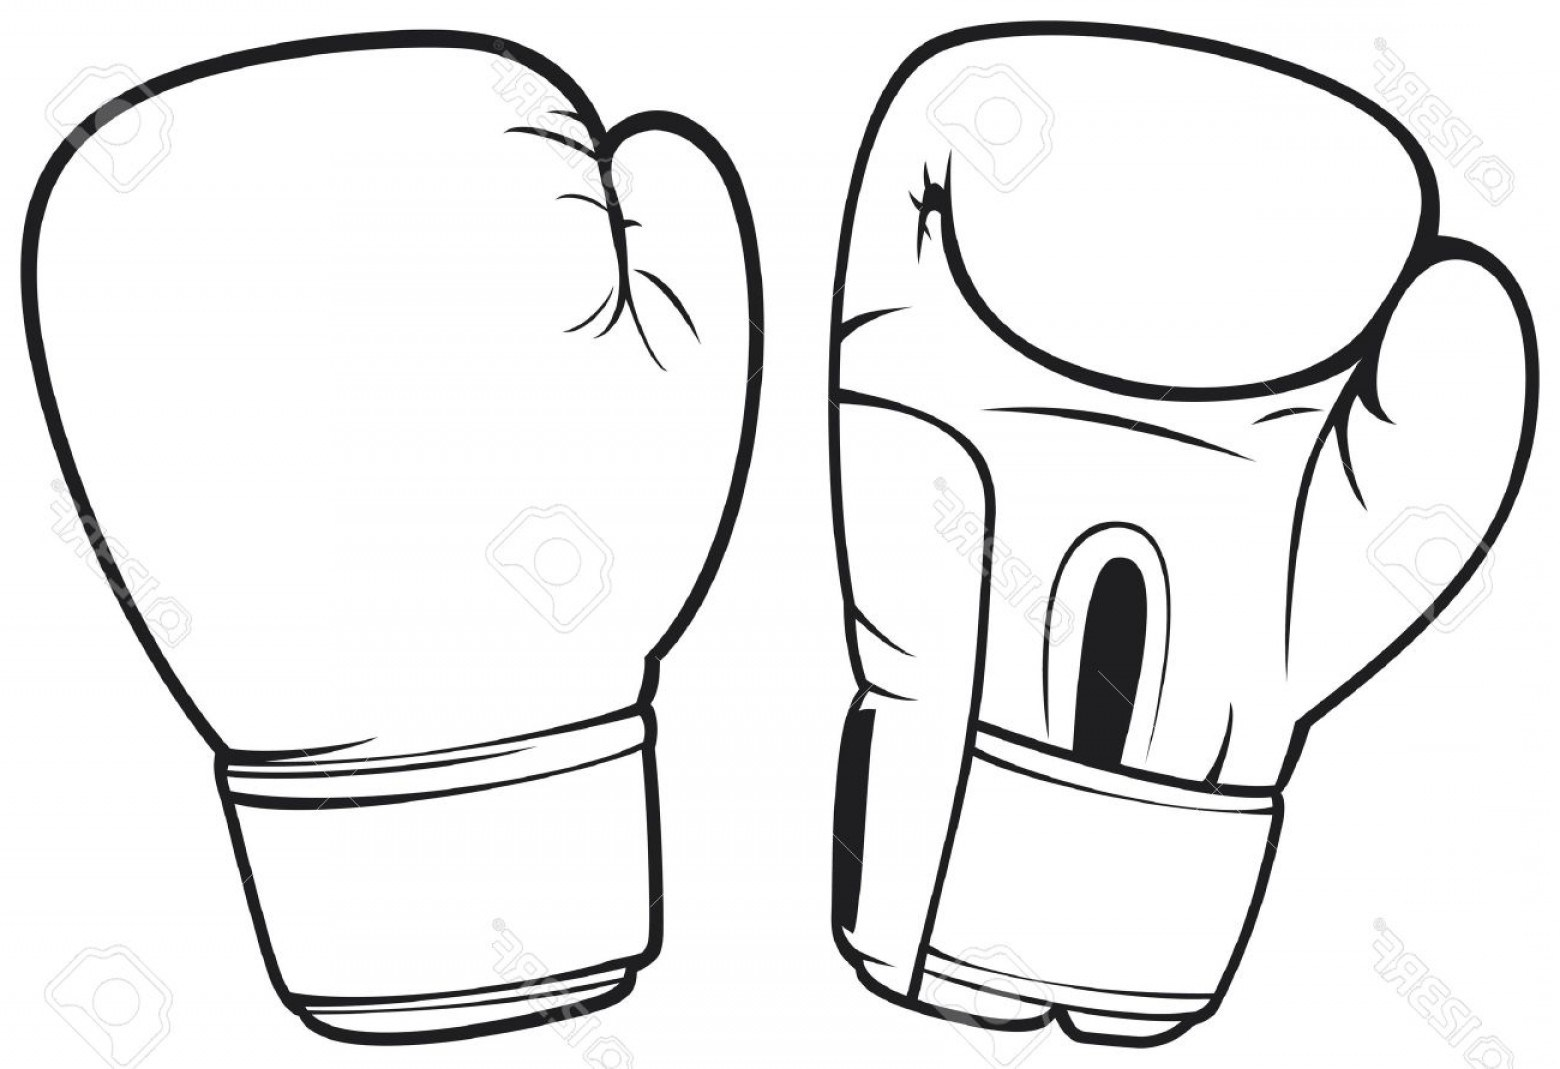 Boxing gloves clipart black and white 5 » Clipart Portal.